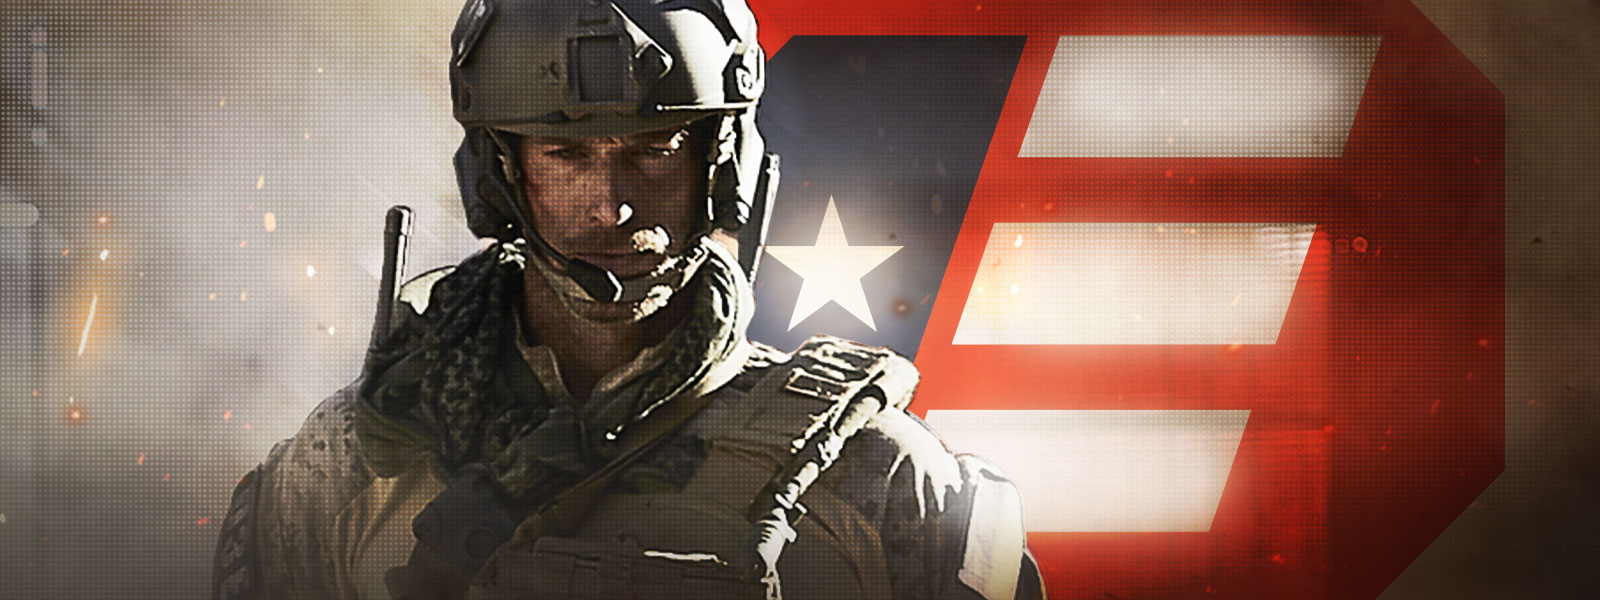 Call of Duty: Modern Warfare character wearing tactical gear in front of a red white and blue logo